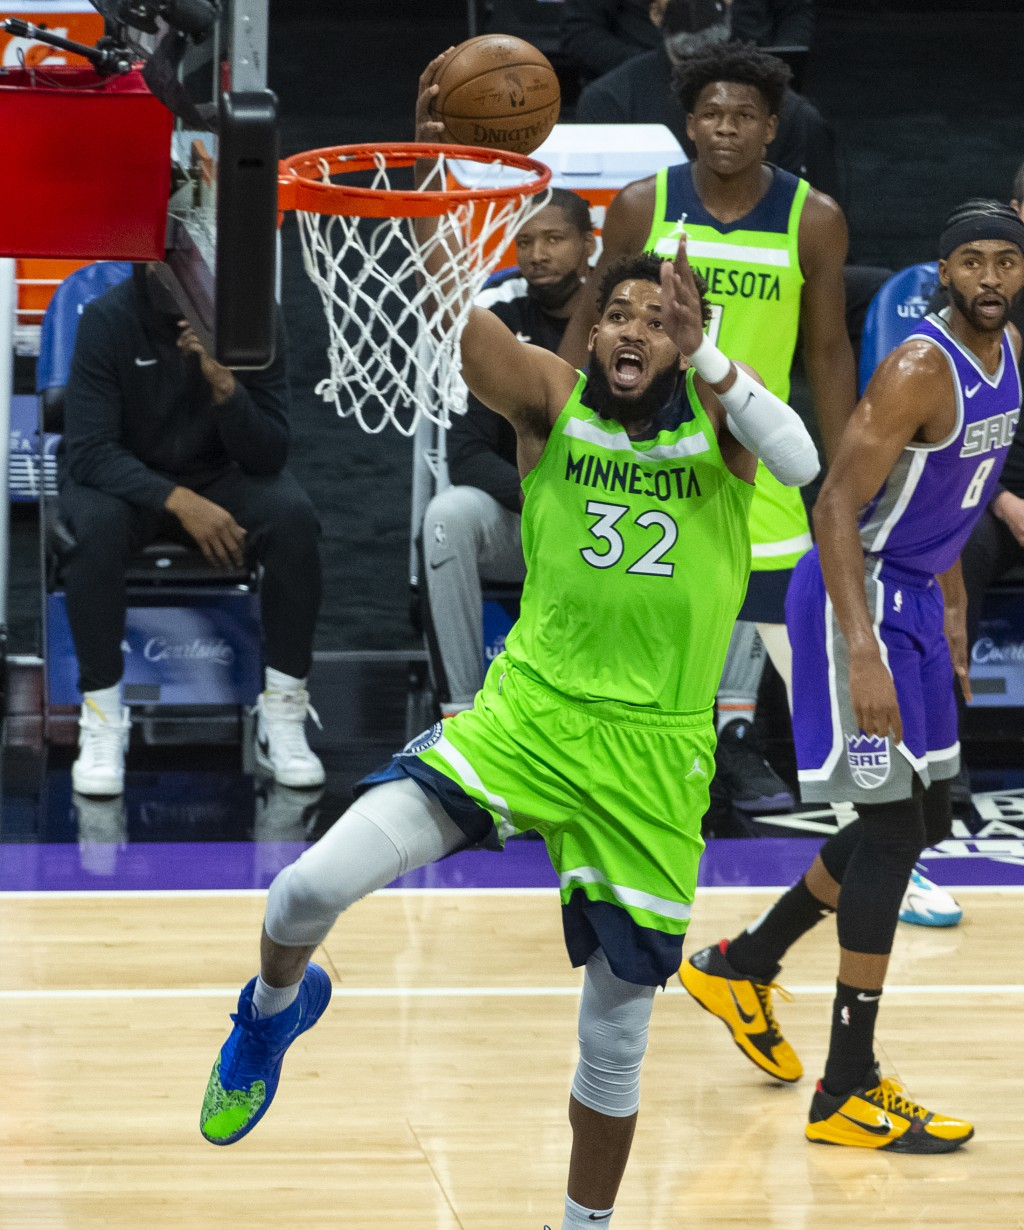 Minnesota Timberwolves center Karl-Anthony Towns (32) scores against the Sacramento Kings during the first quarter of an NBA basketball game in Sacram...